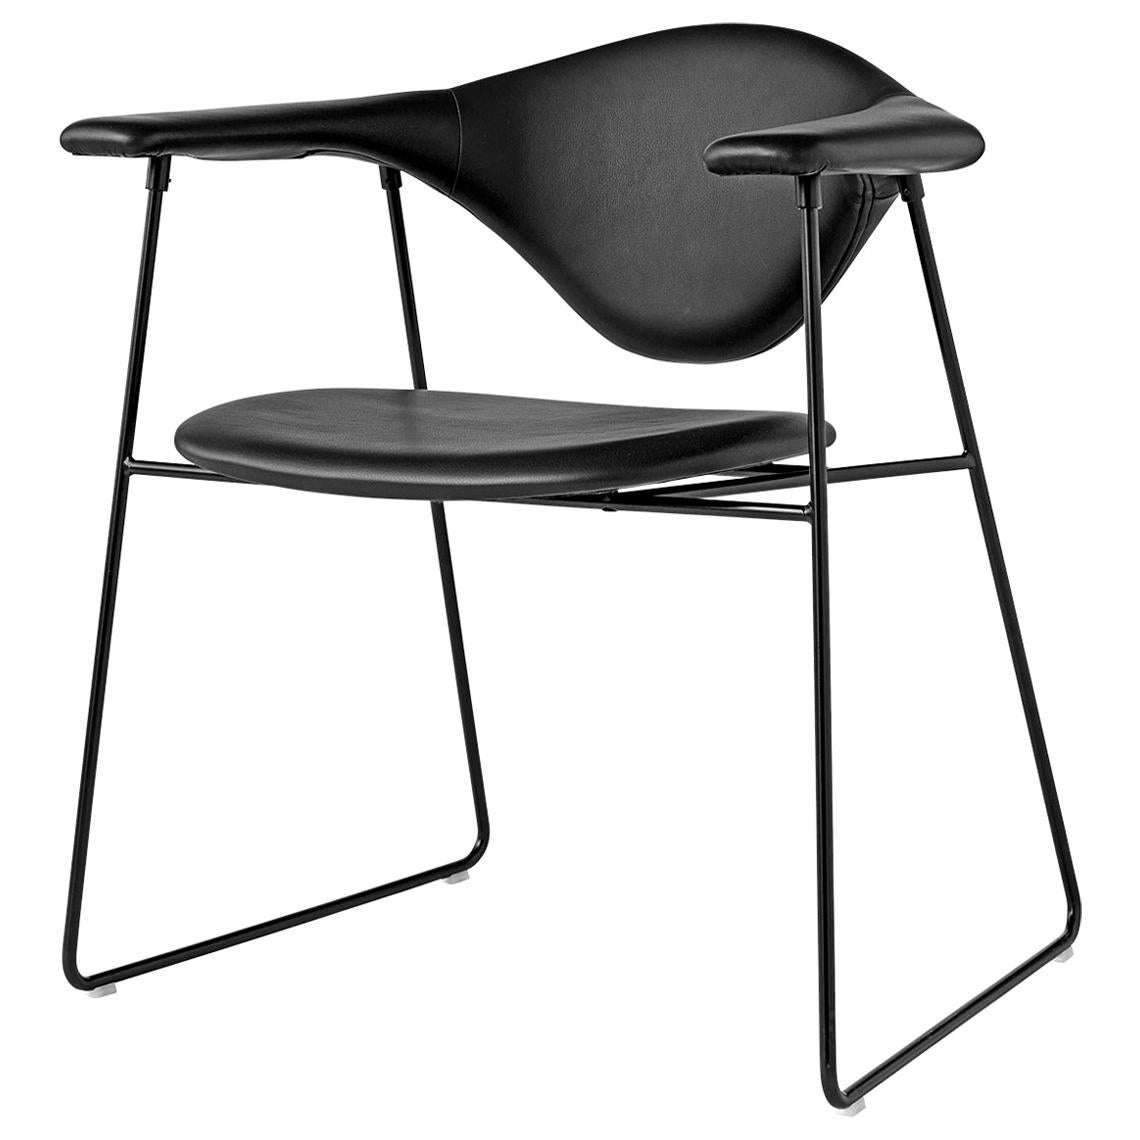 Masculo Dining Chair, Fully Upholstered, Sledge Base